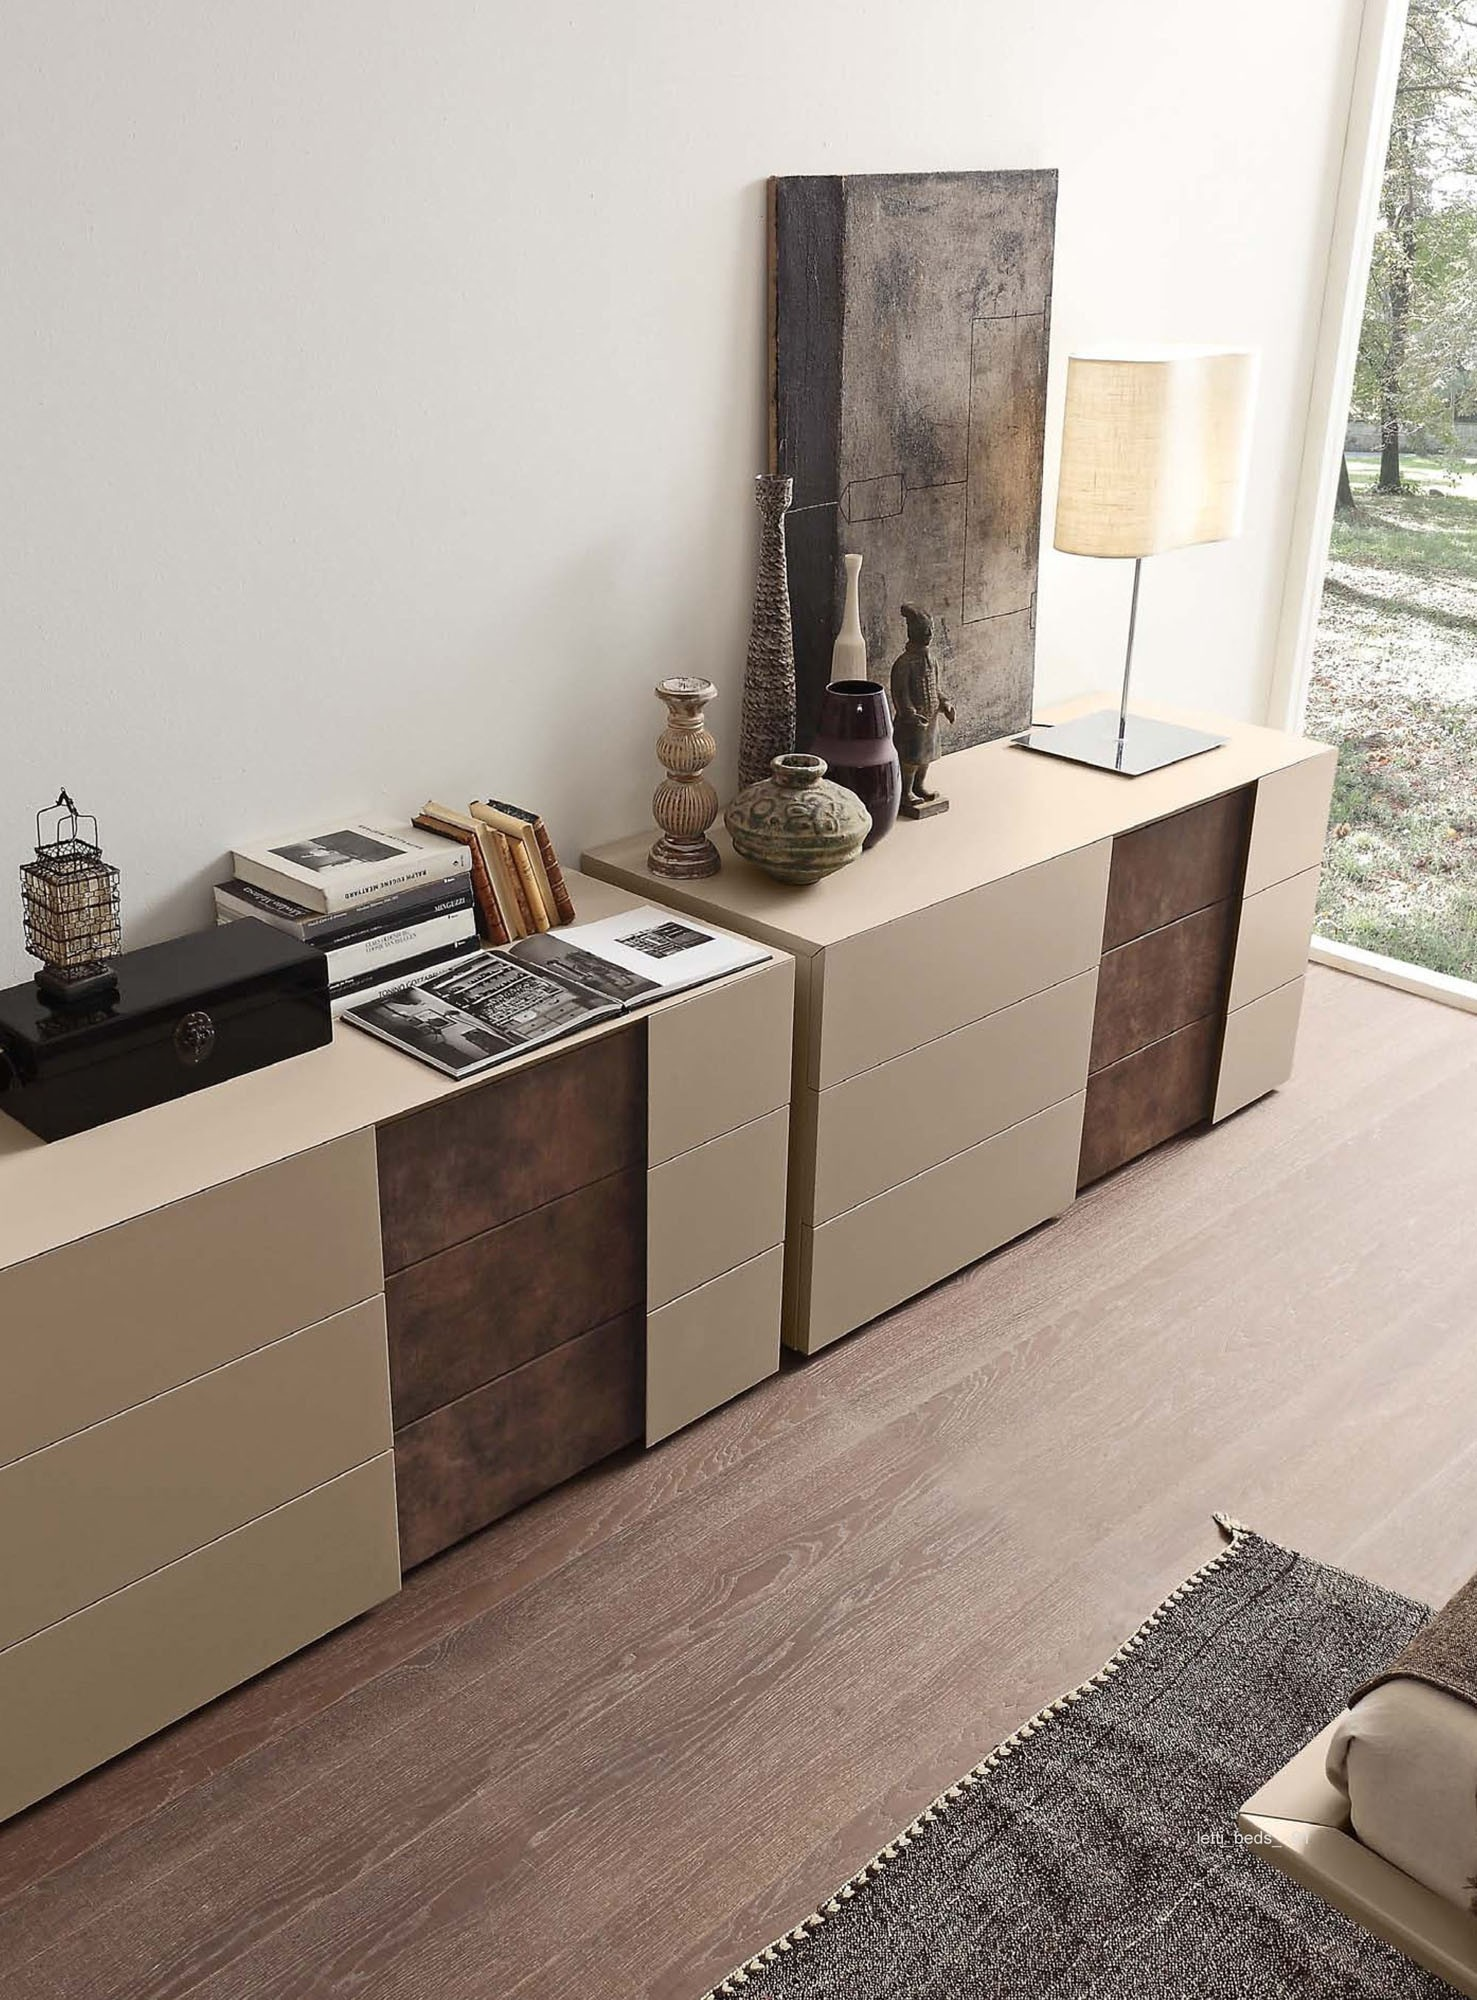 Best Presotto Camere Da Letto Images - Brentwoodseasidecabins.com ...